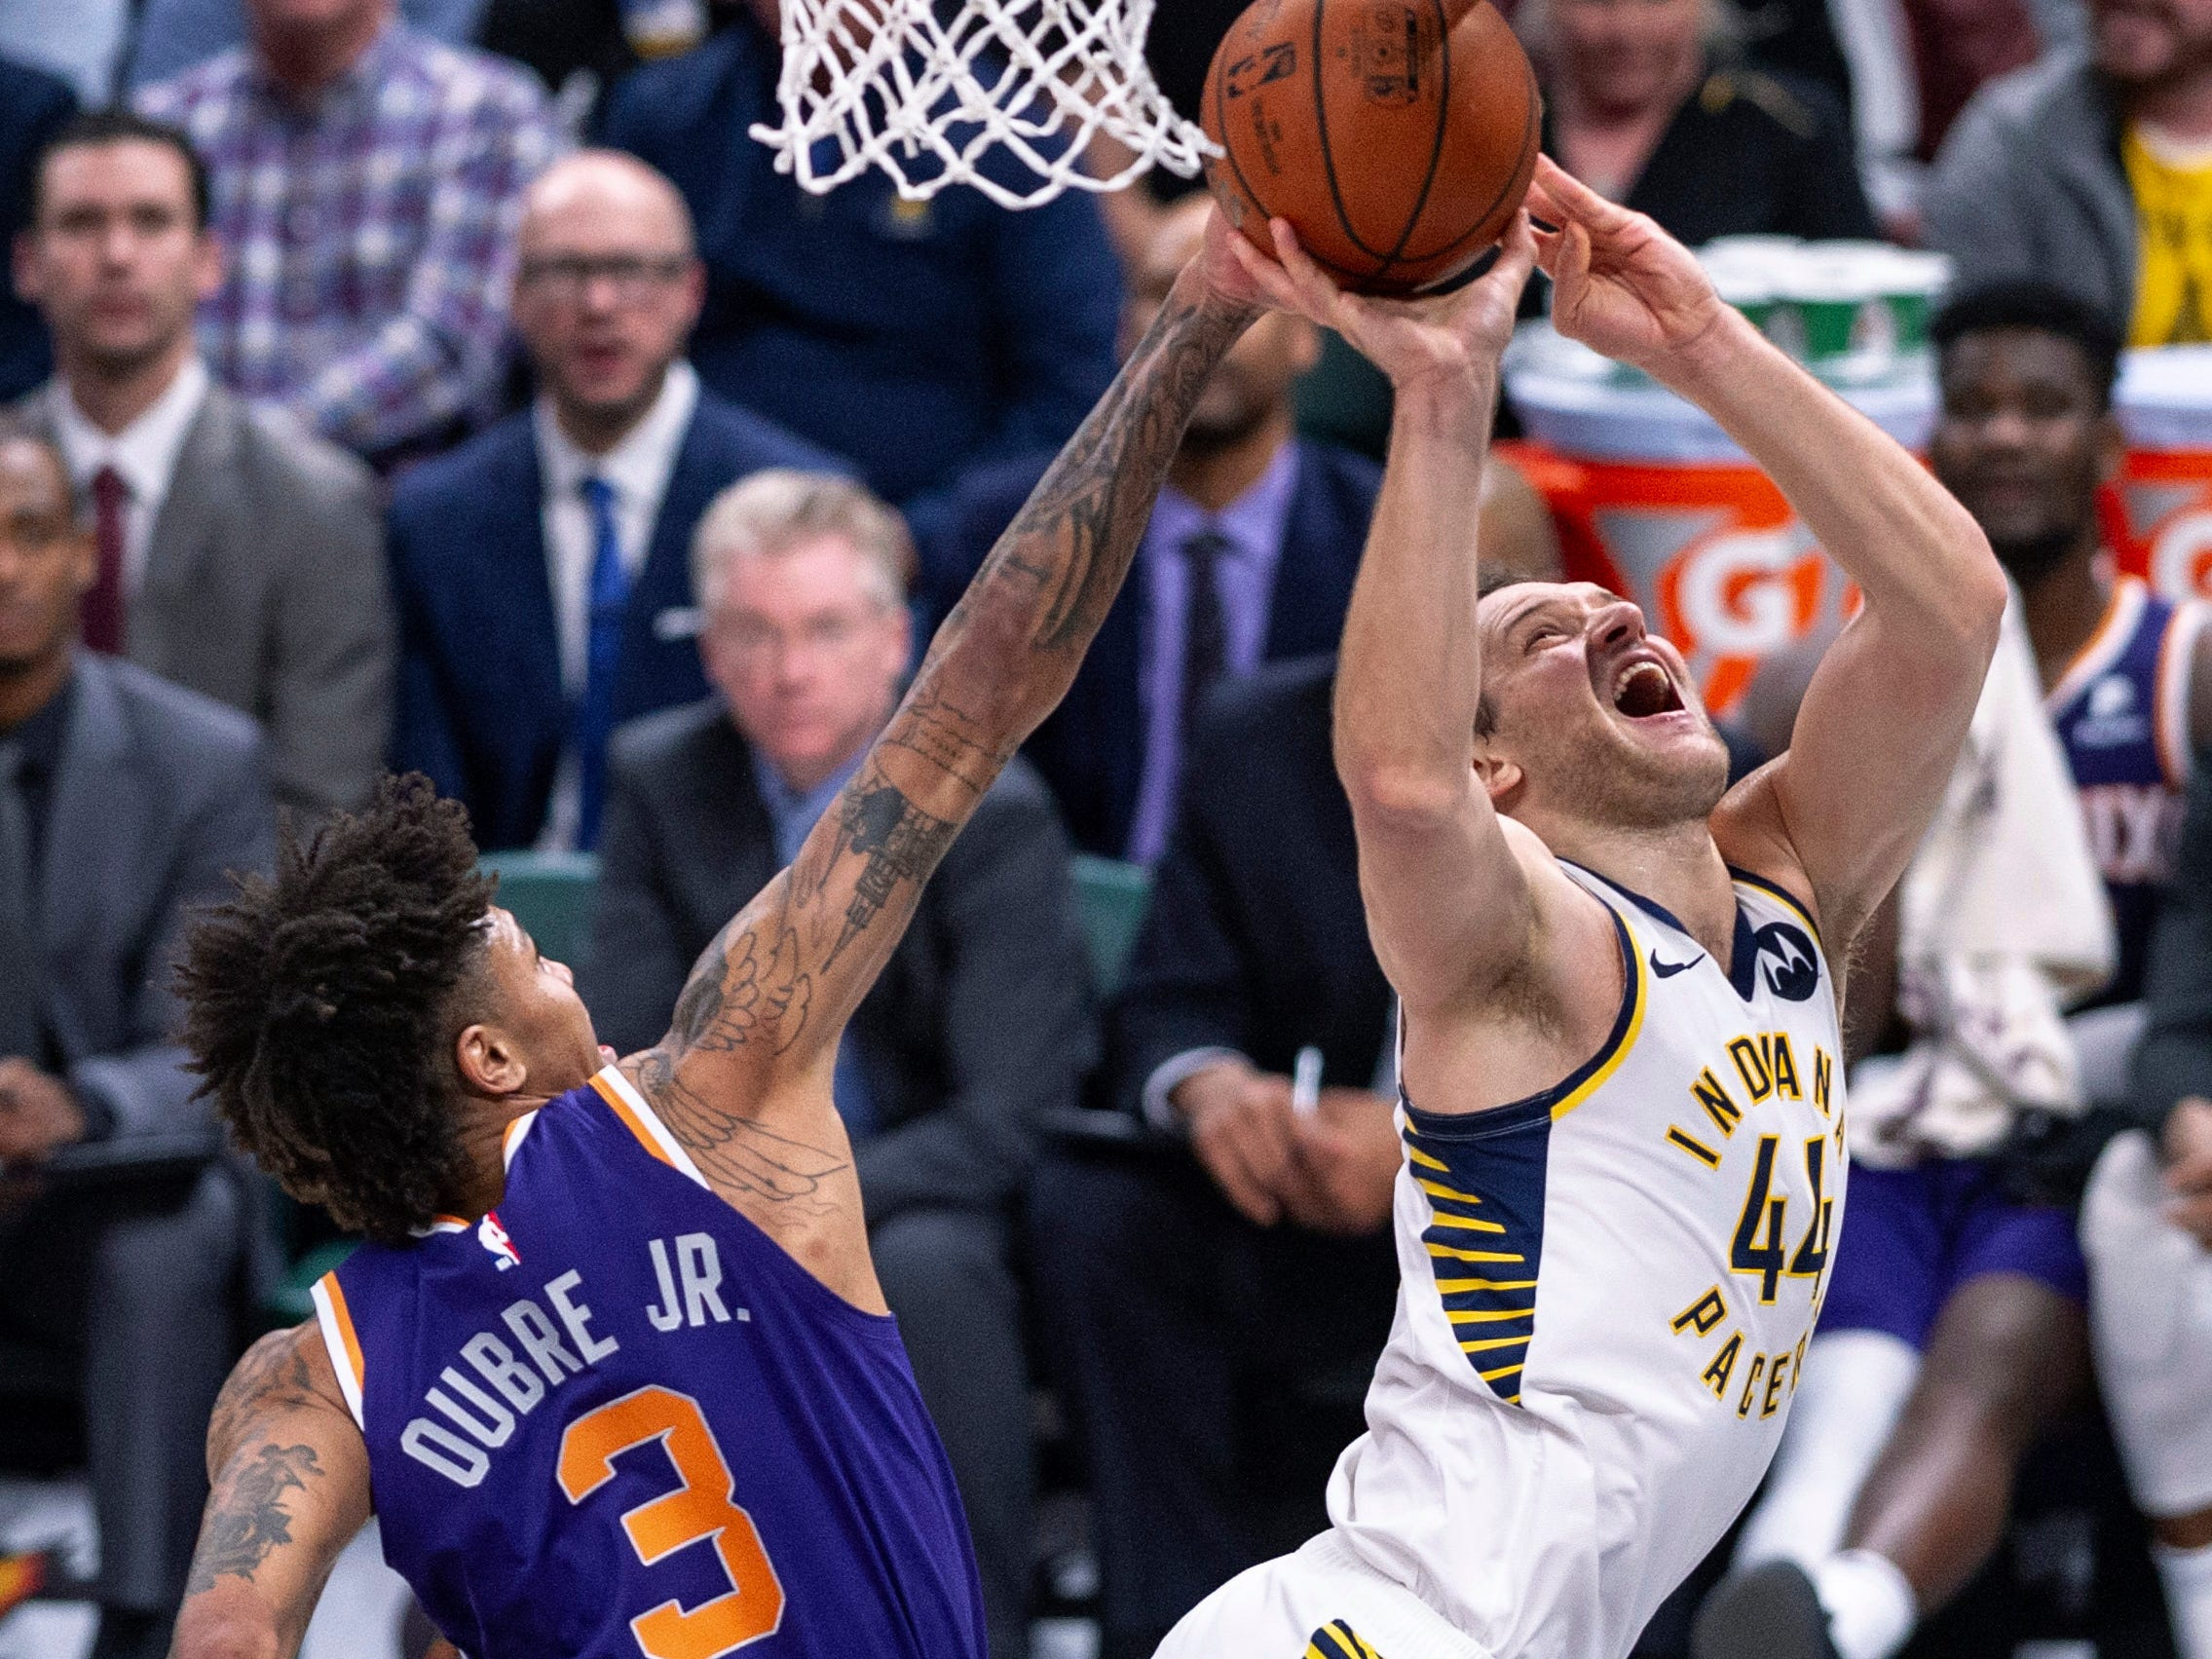 Indiana Pacers forward Bojan Bogdanovic (44) hits the backboard with his shot as he's defended by Phoenix Suns forward Kelly Oubre Jr. (3) during the second half of an NBA basketball game Tuesday, Jan. 15, 2019, in Indianapolis. The Pacers won 131-97. (AP Photo/Doug McSchooler)